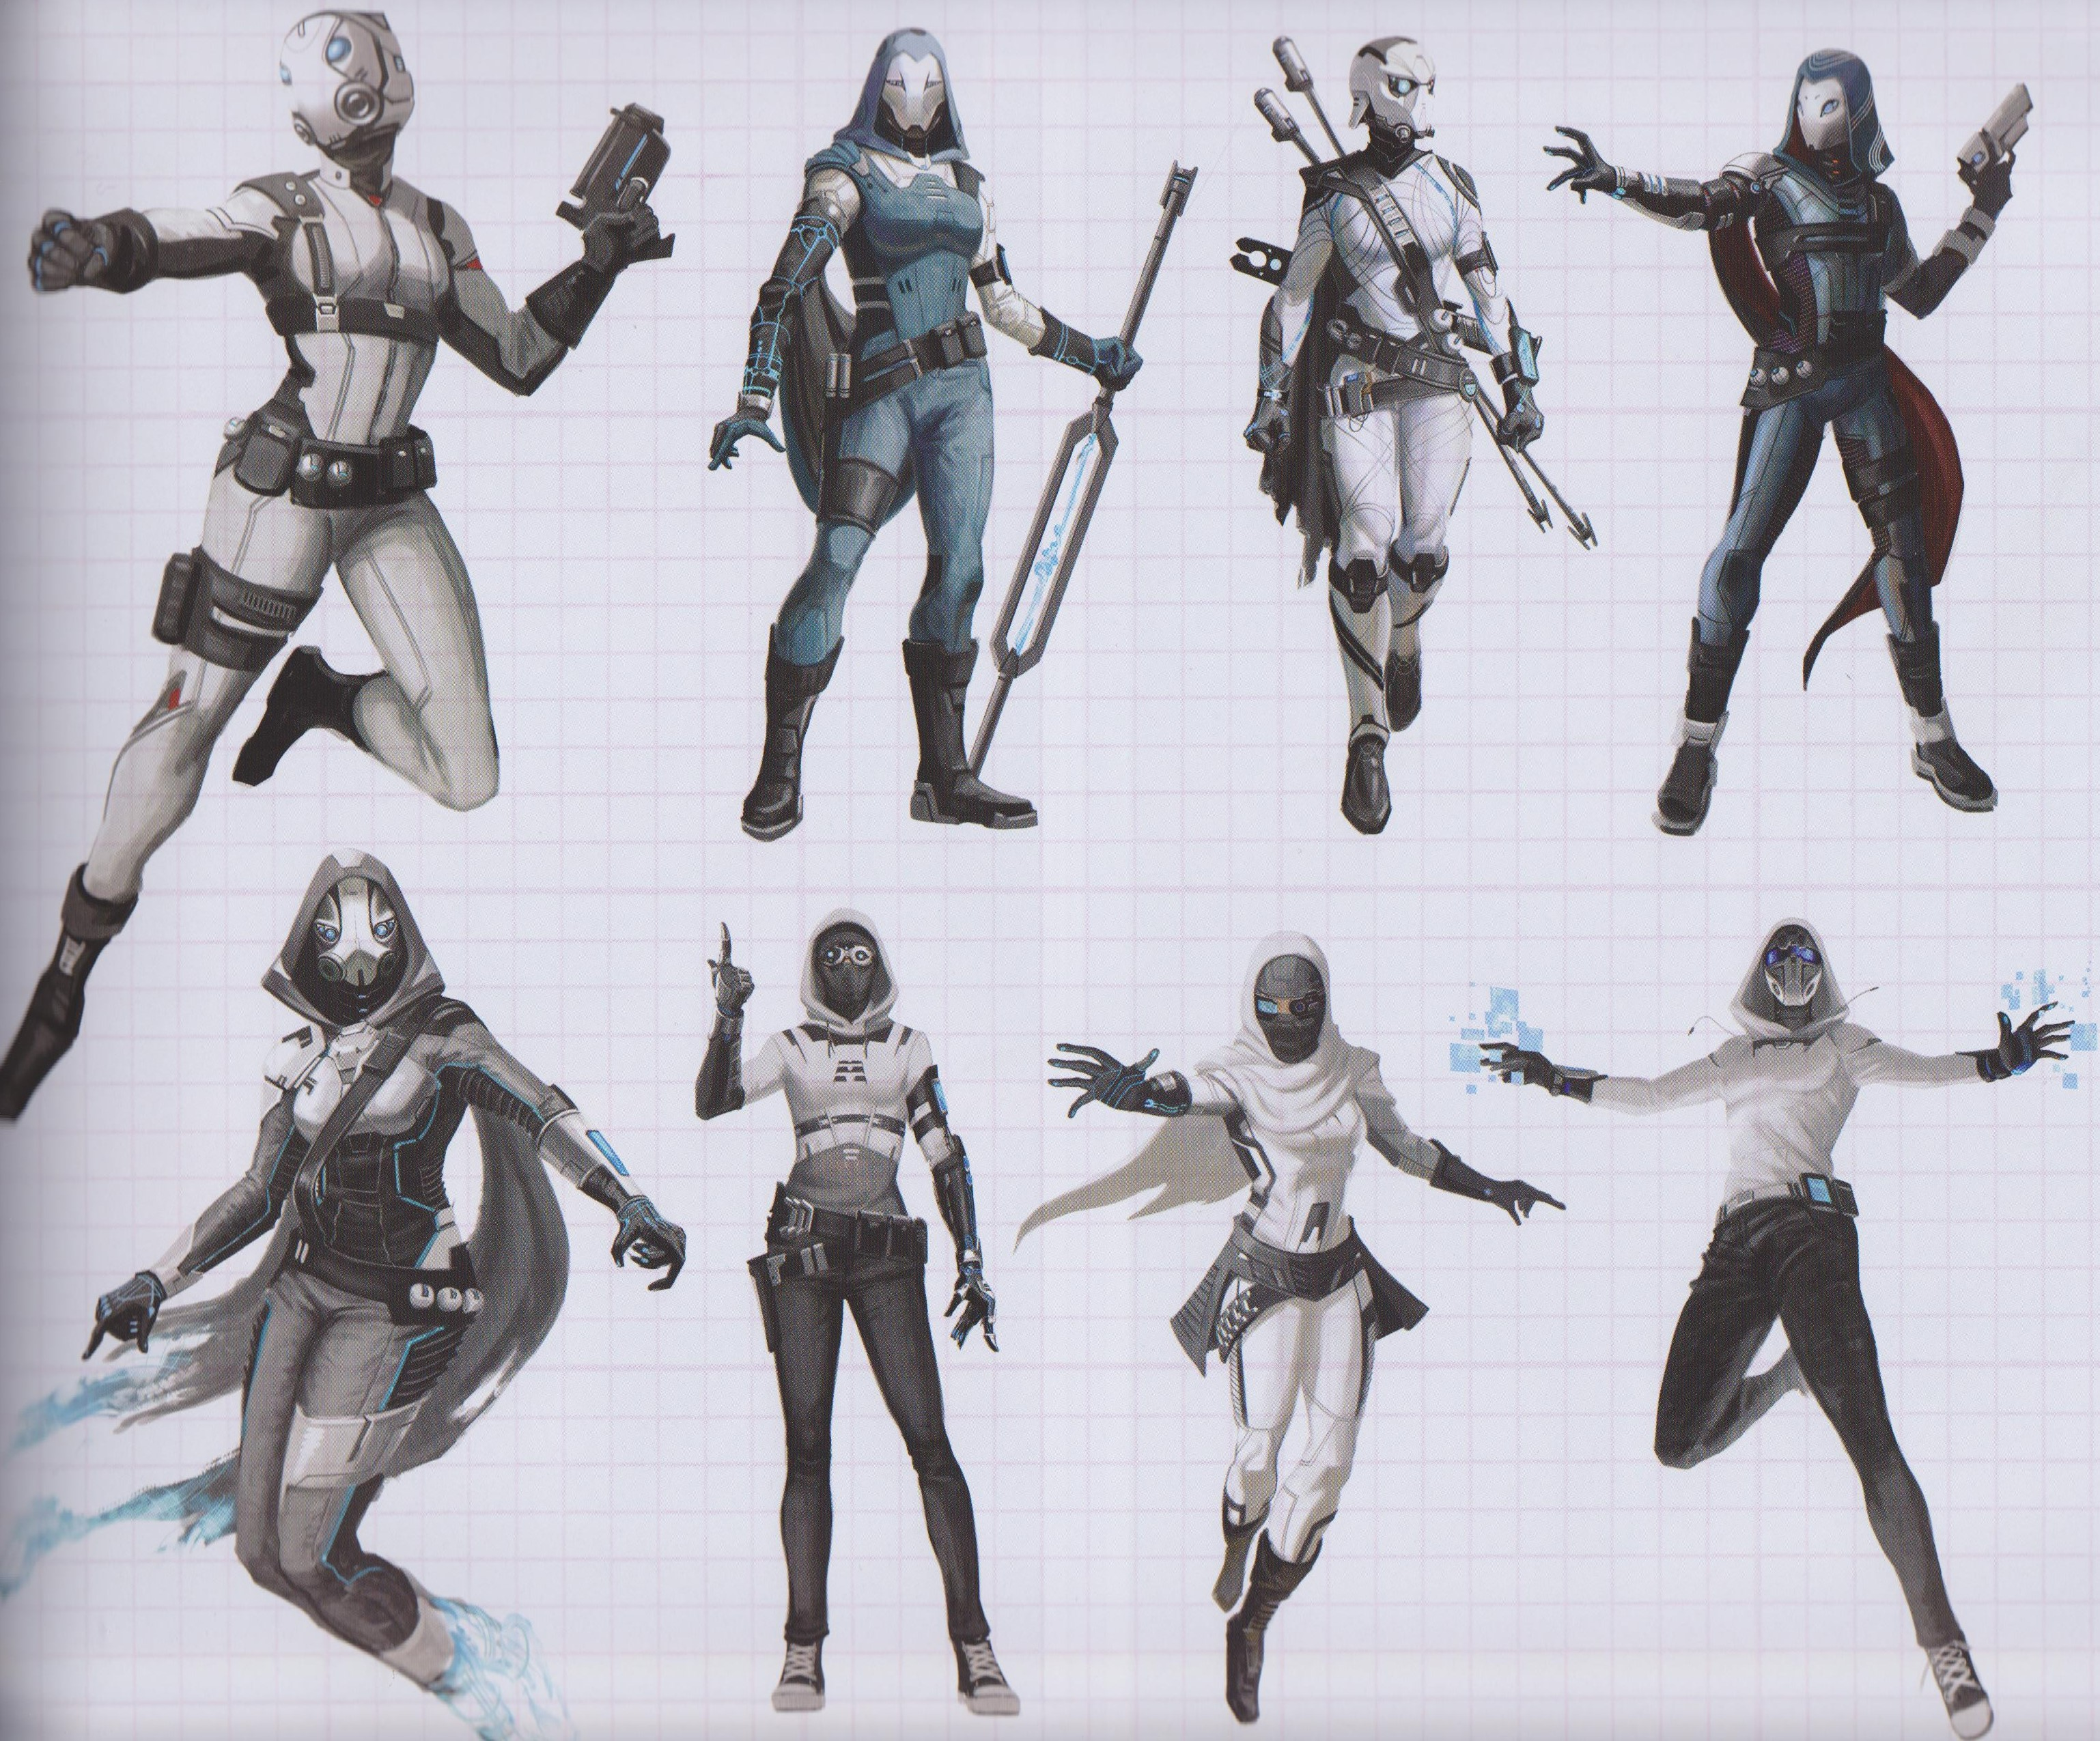 Ant Man And The Wasp Ghost Concept Art Reveals Comic